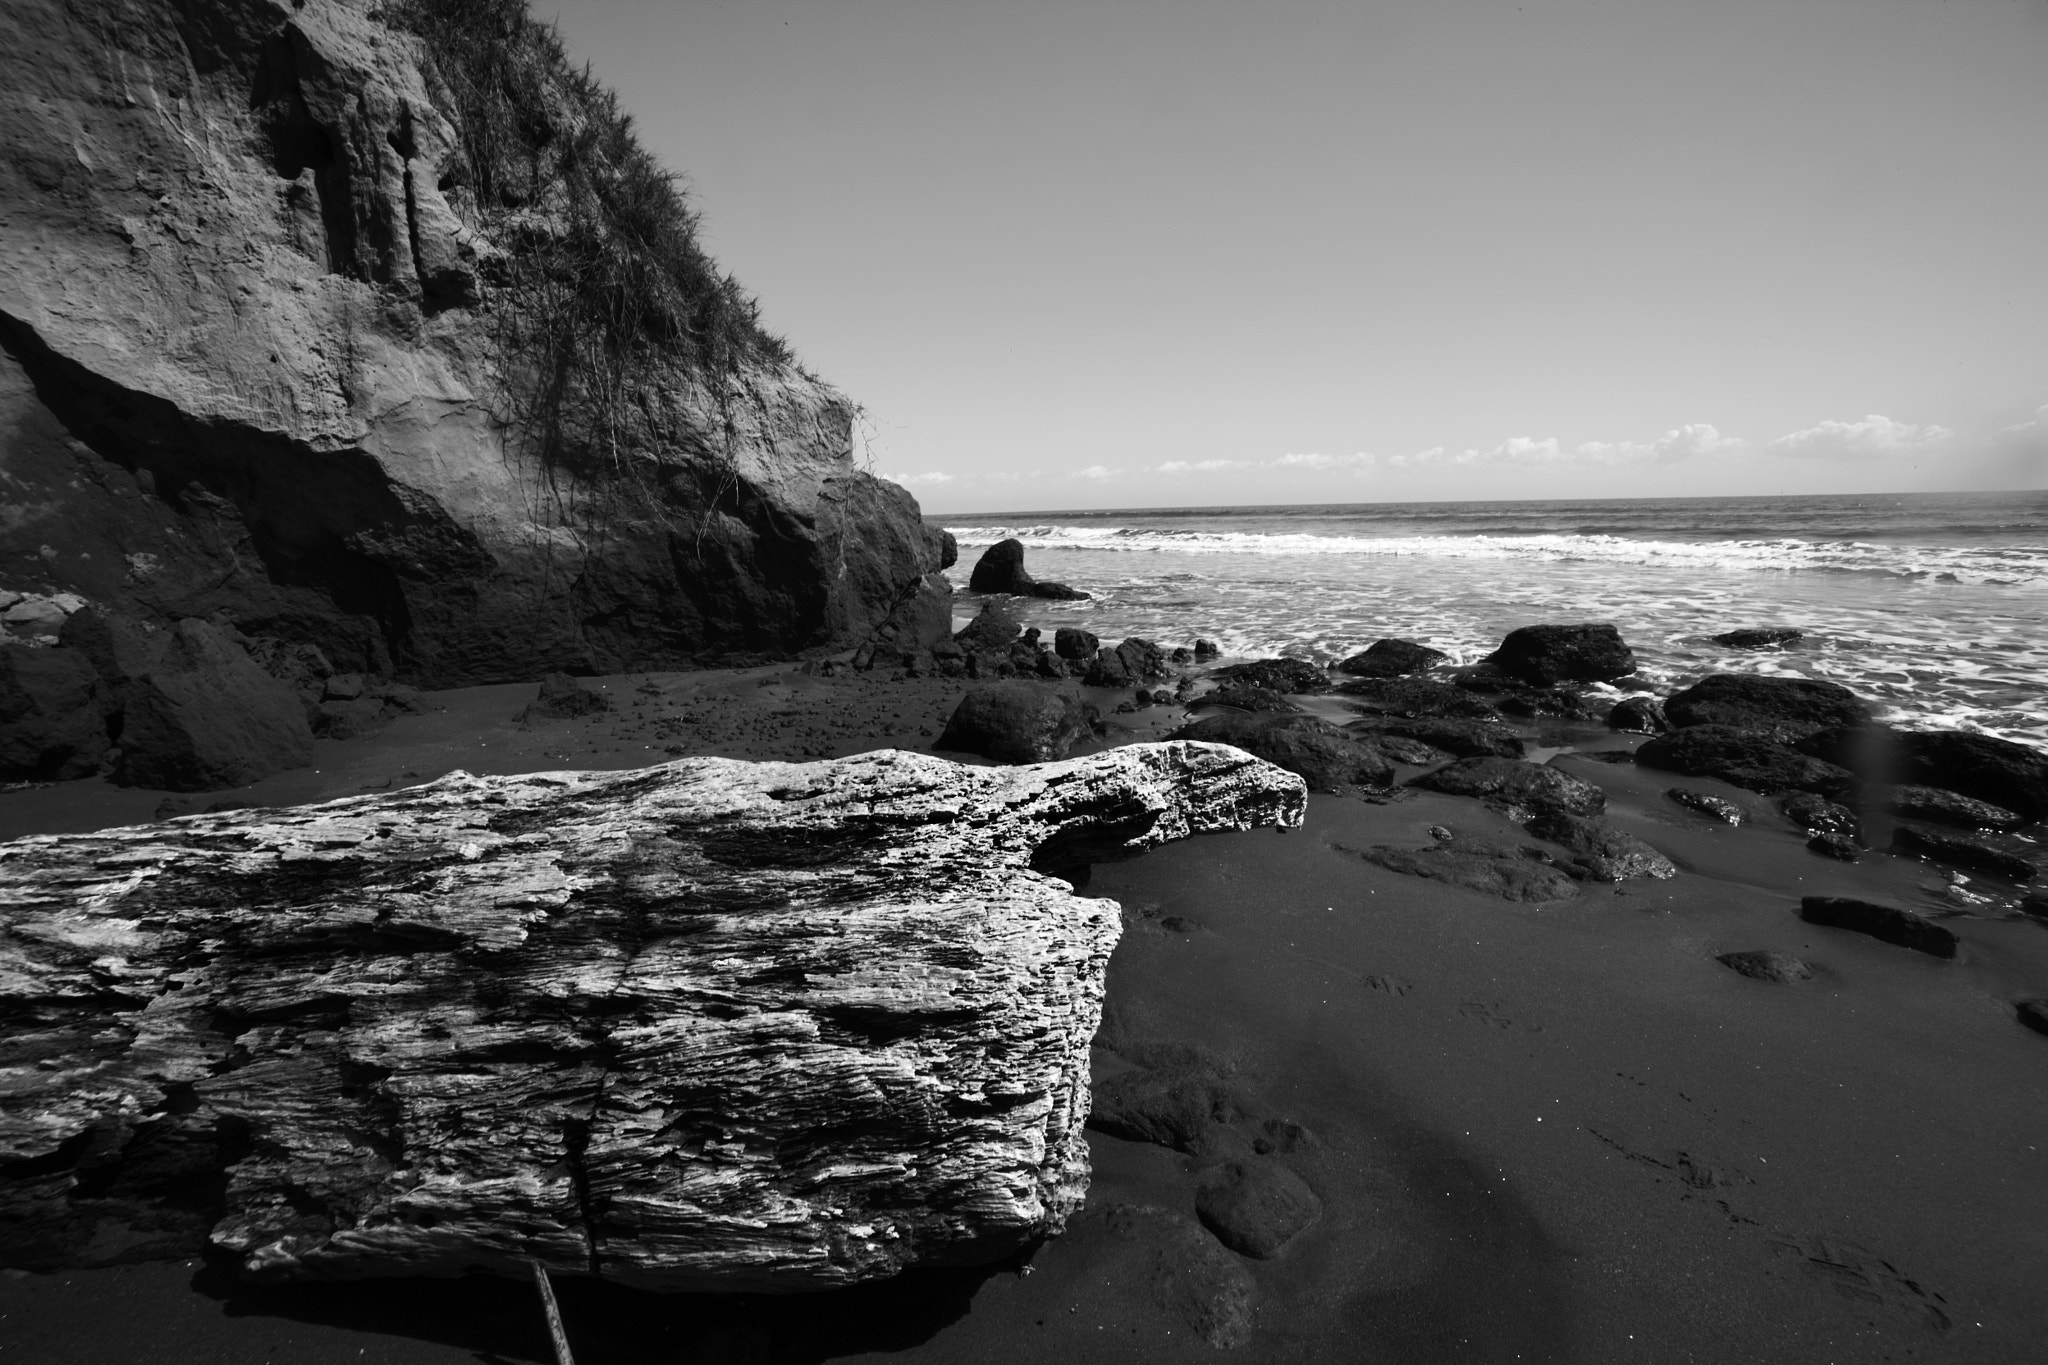 Photograph Beach in black and white by Cristobal Garciaferro Rubio on 500px